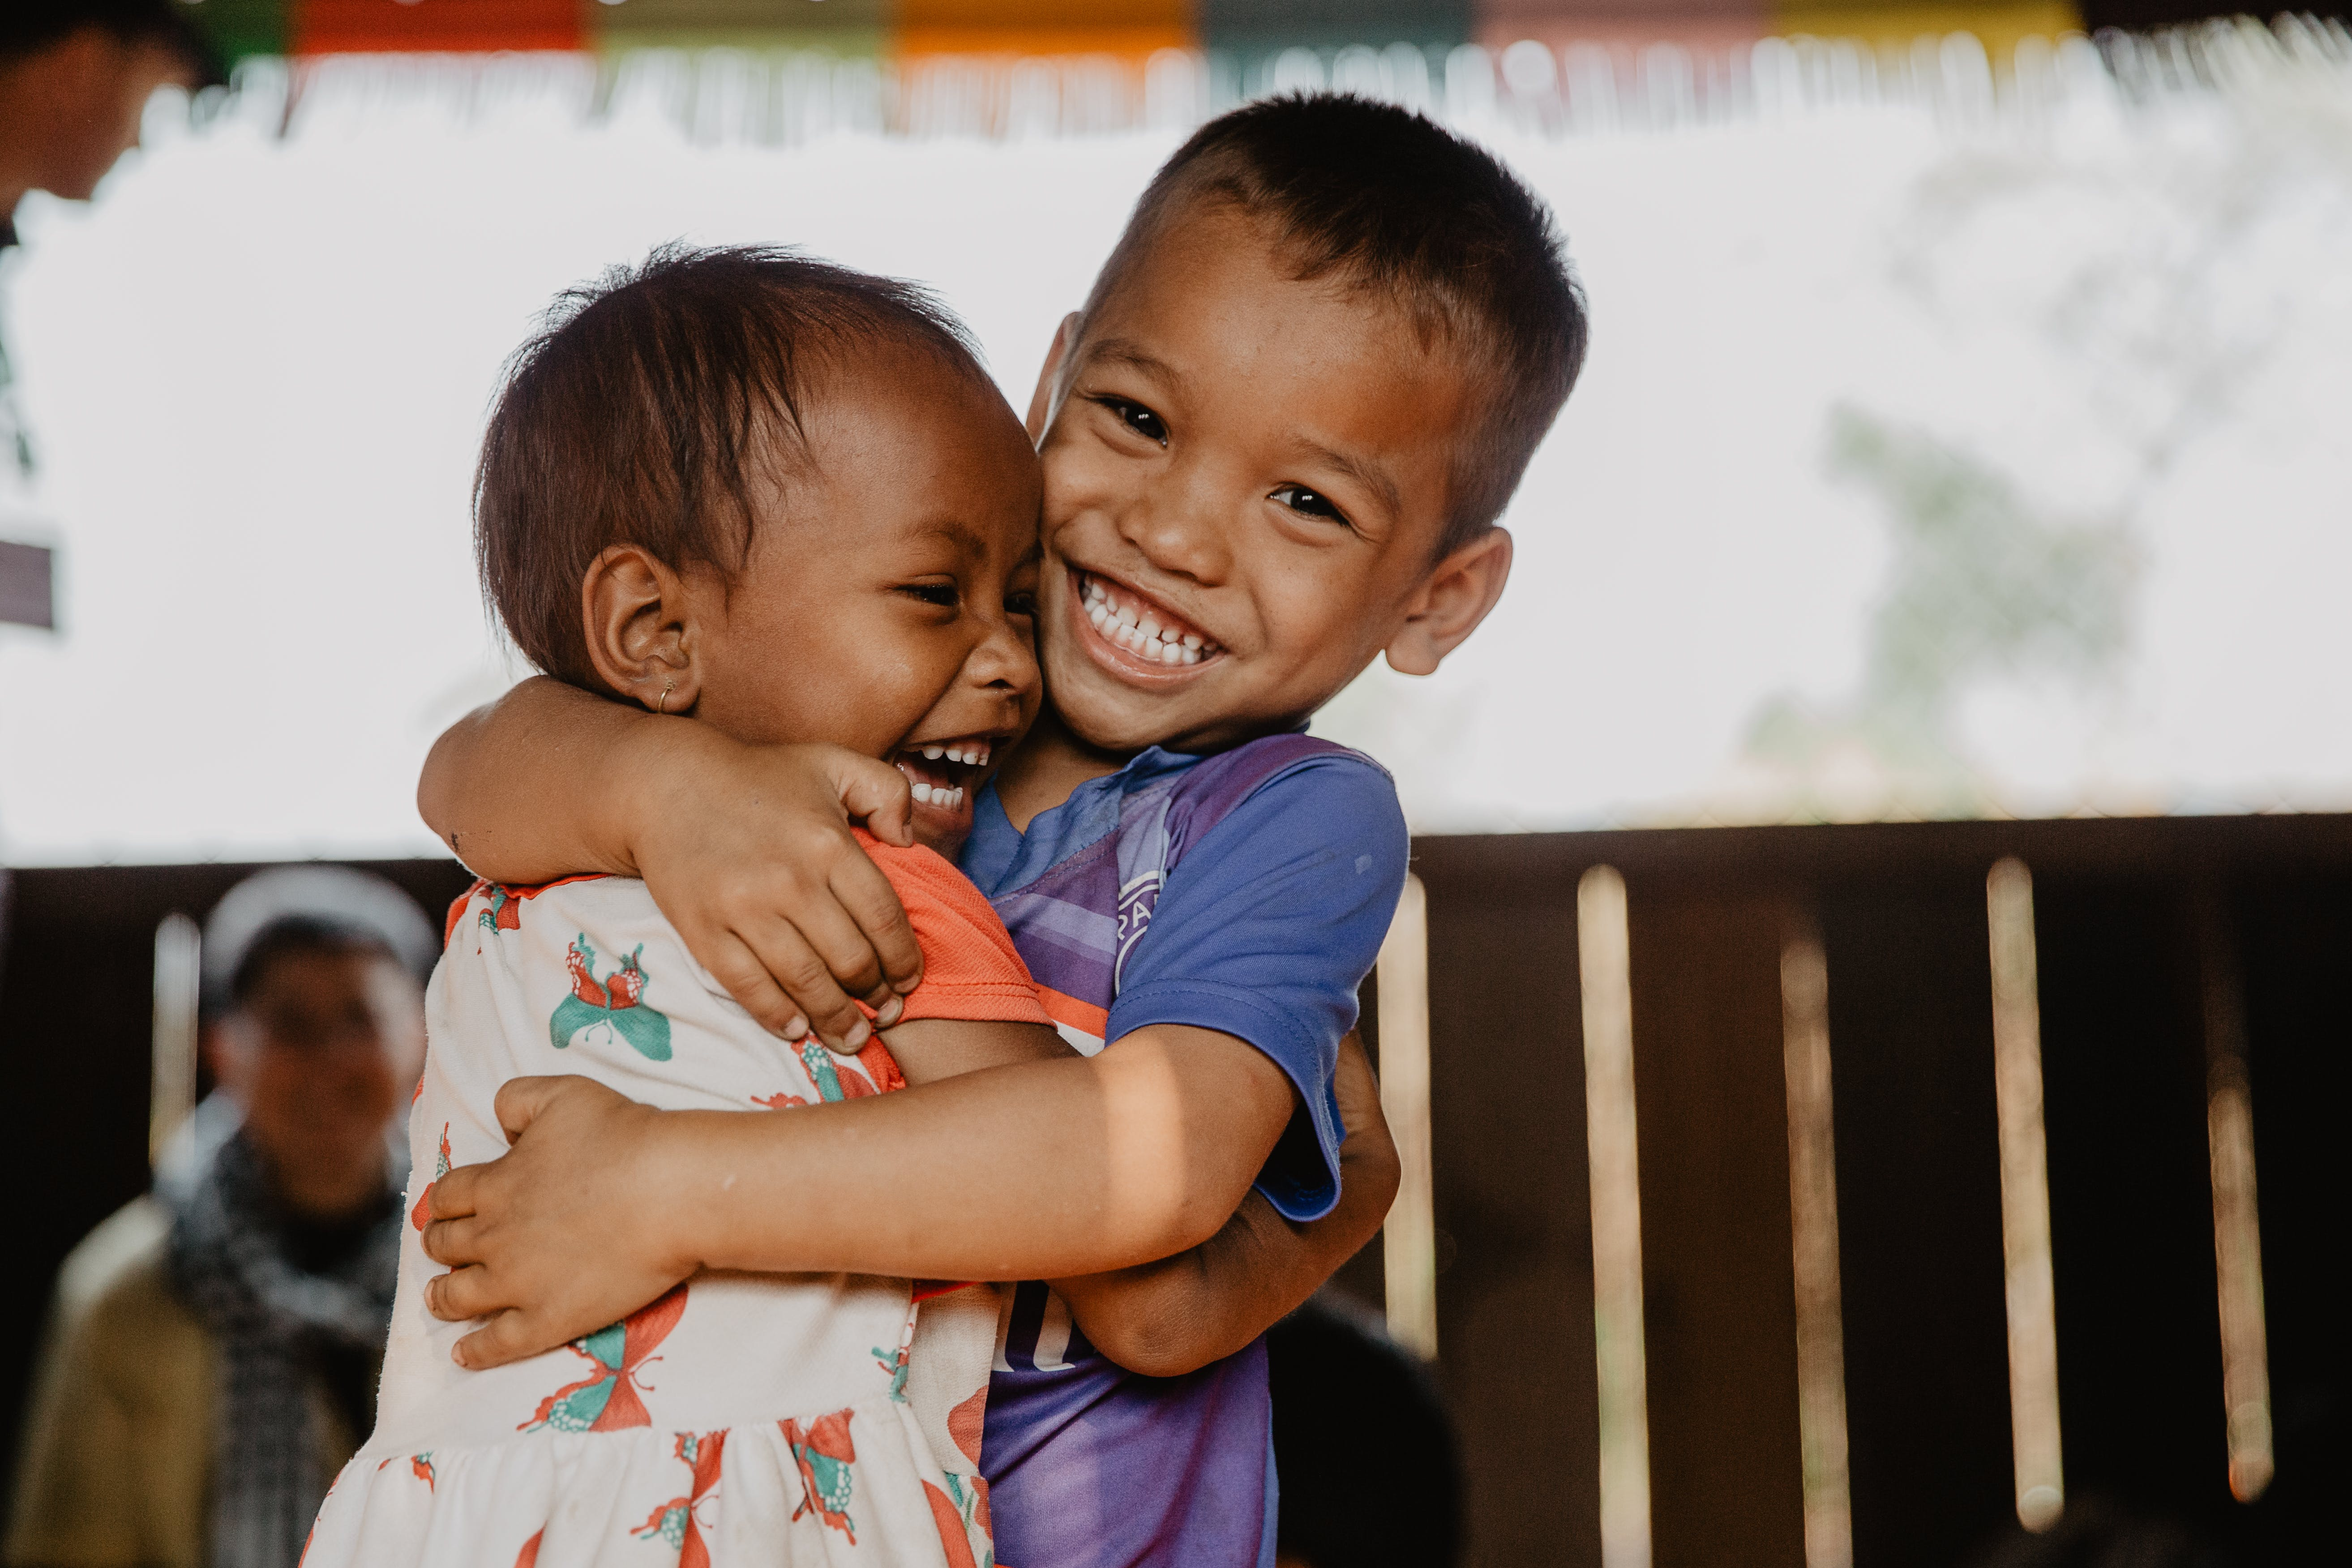 Two kids in Cambodia embrace in a warm hug